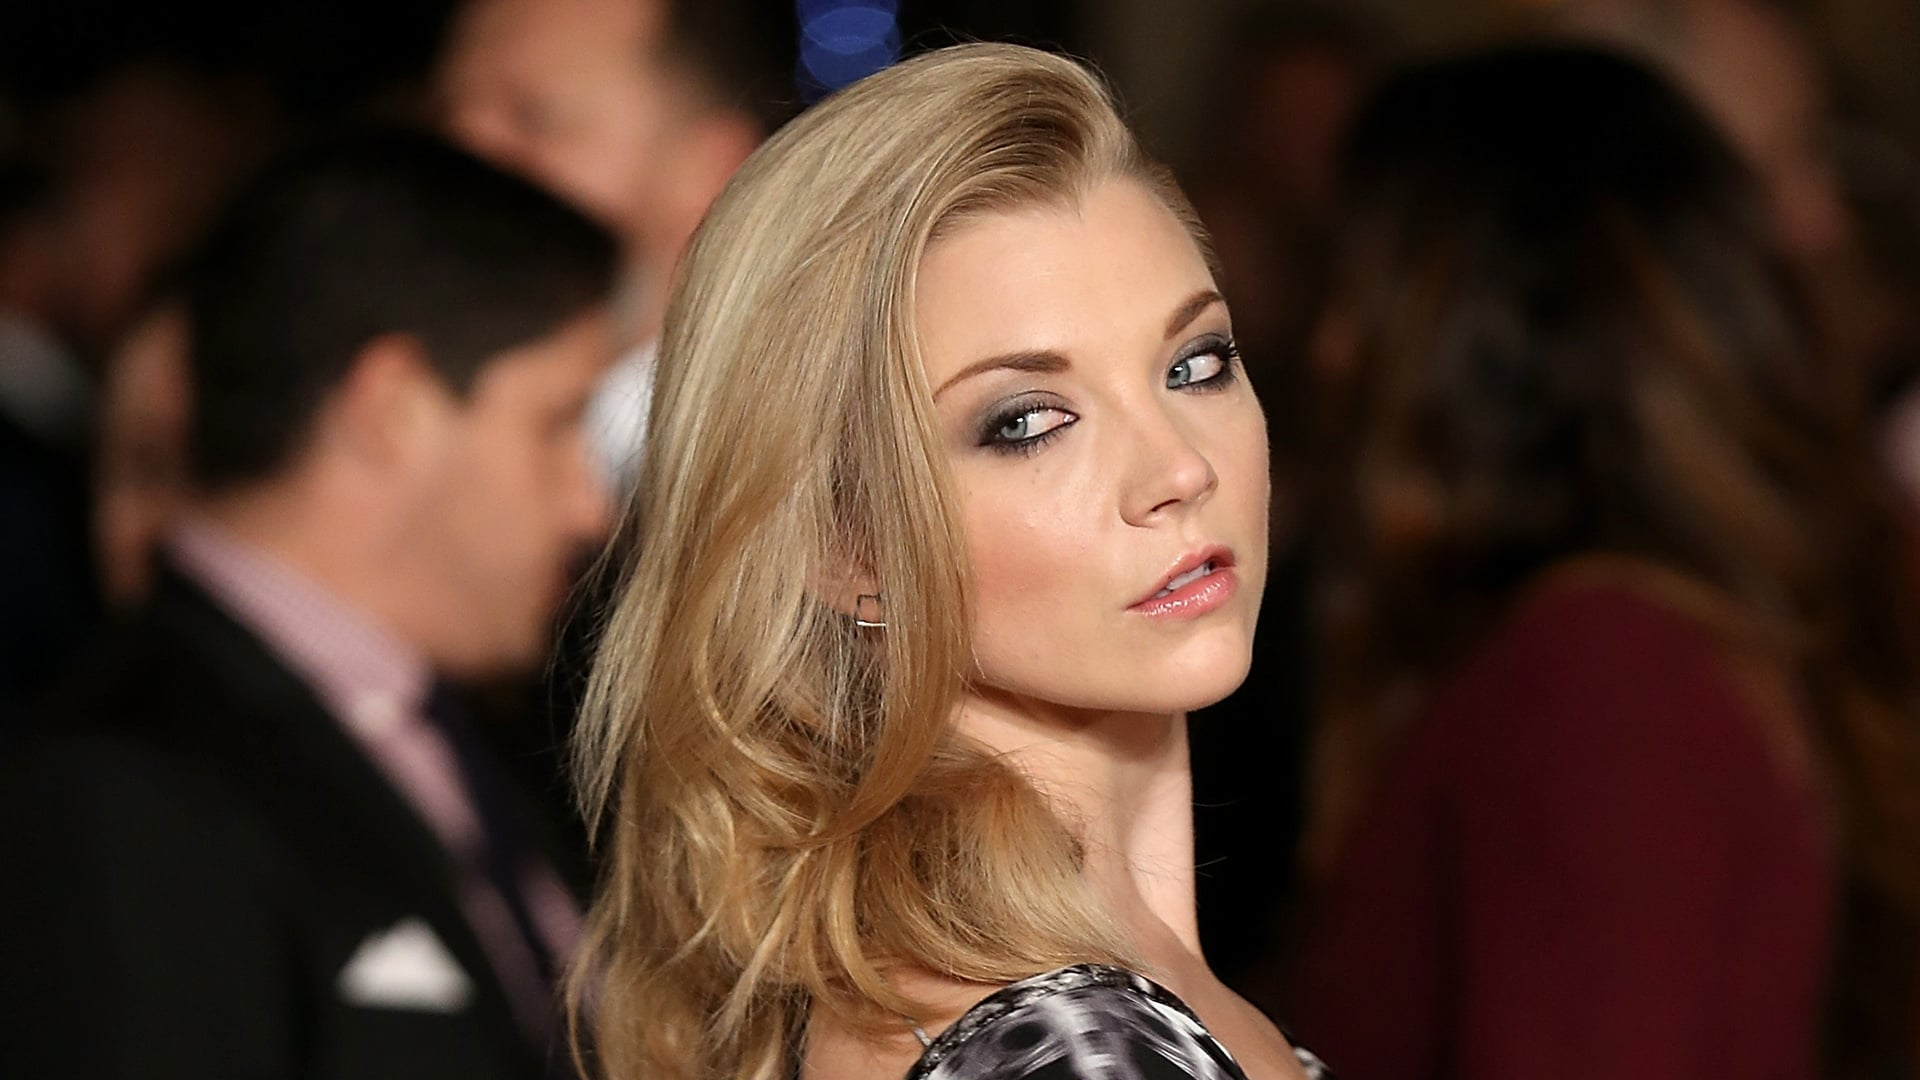 Beautiful Girl With Hat Wallpapers 20 Beautiful Hd Natalie Dormer Wallpapers